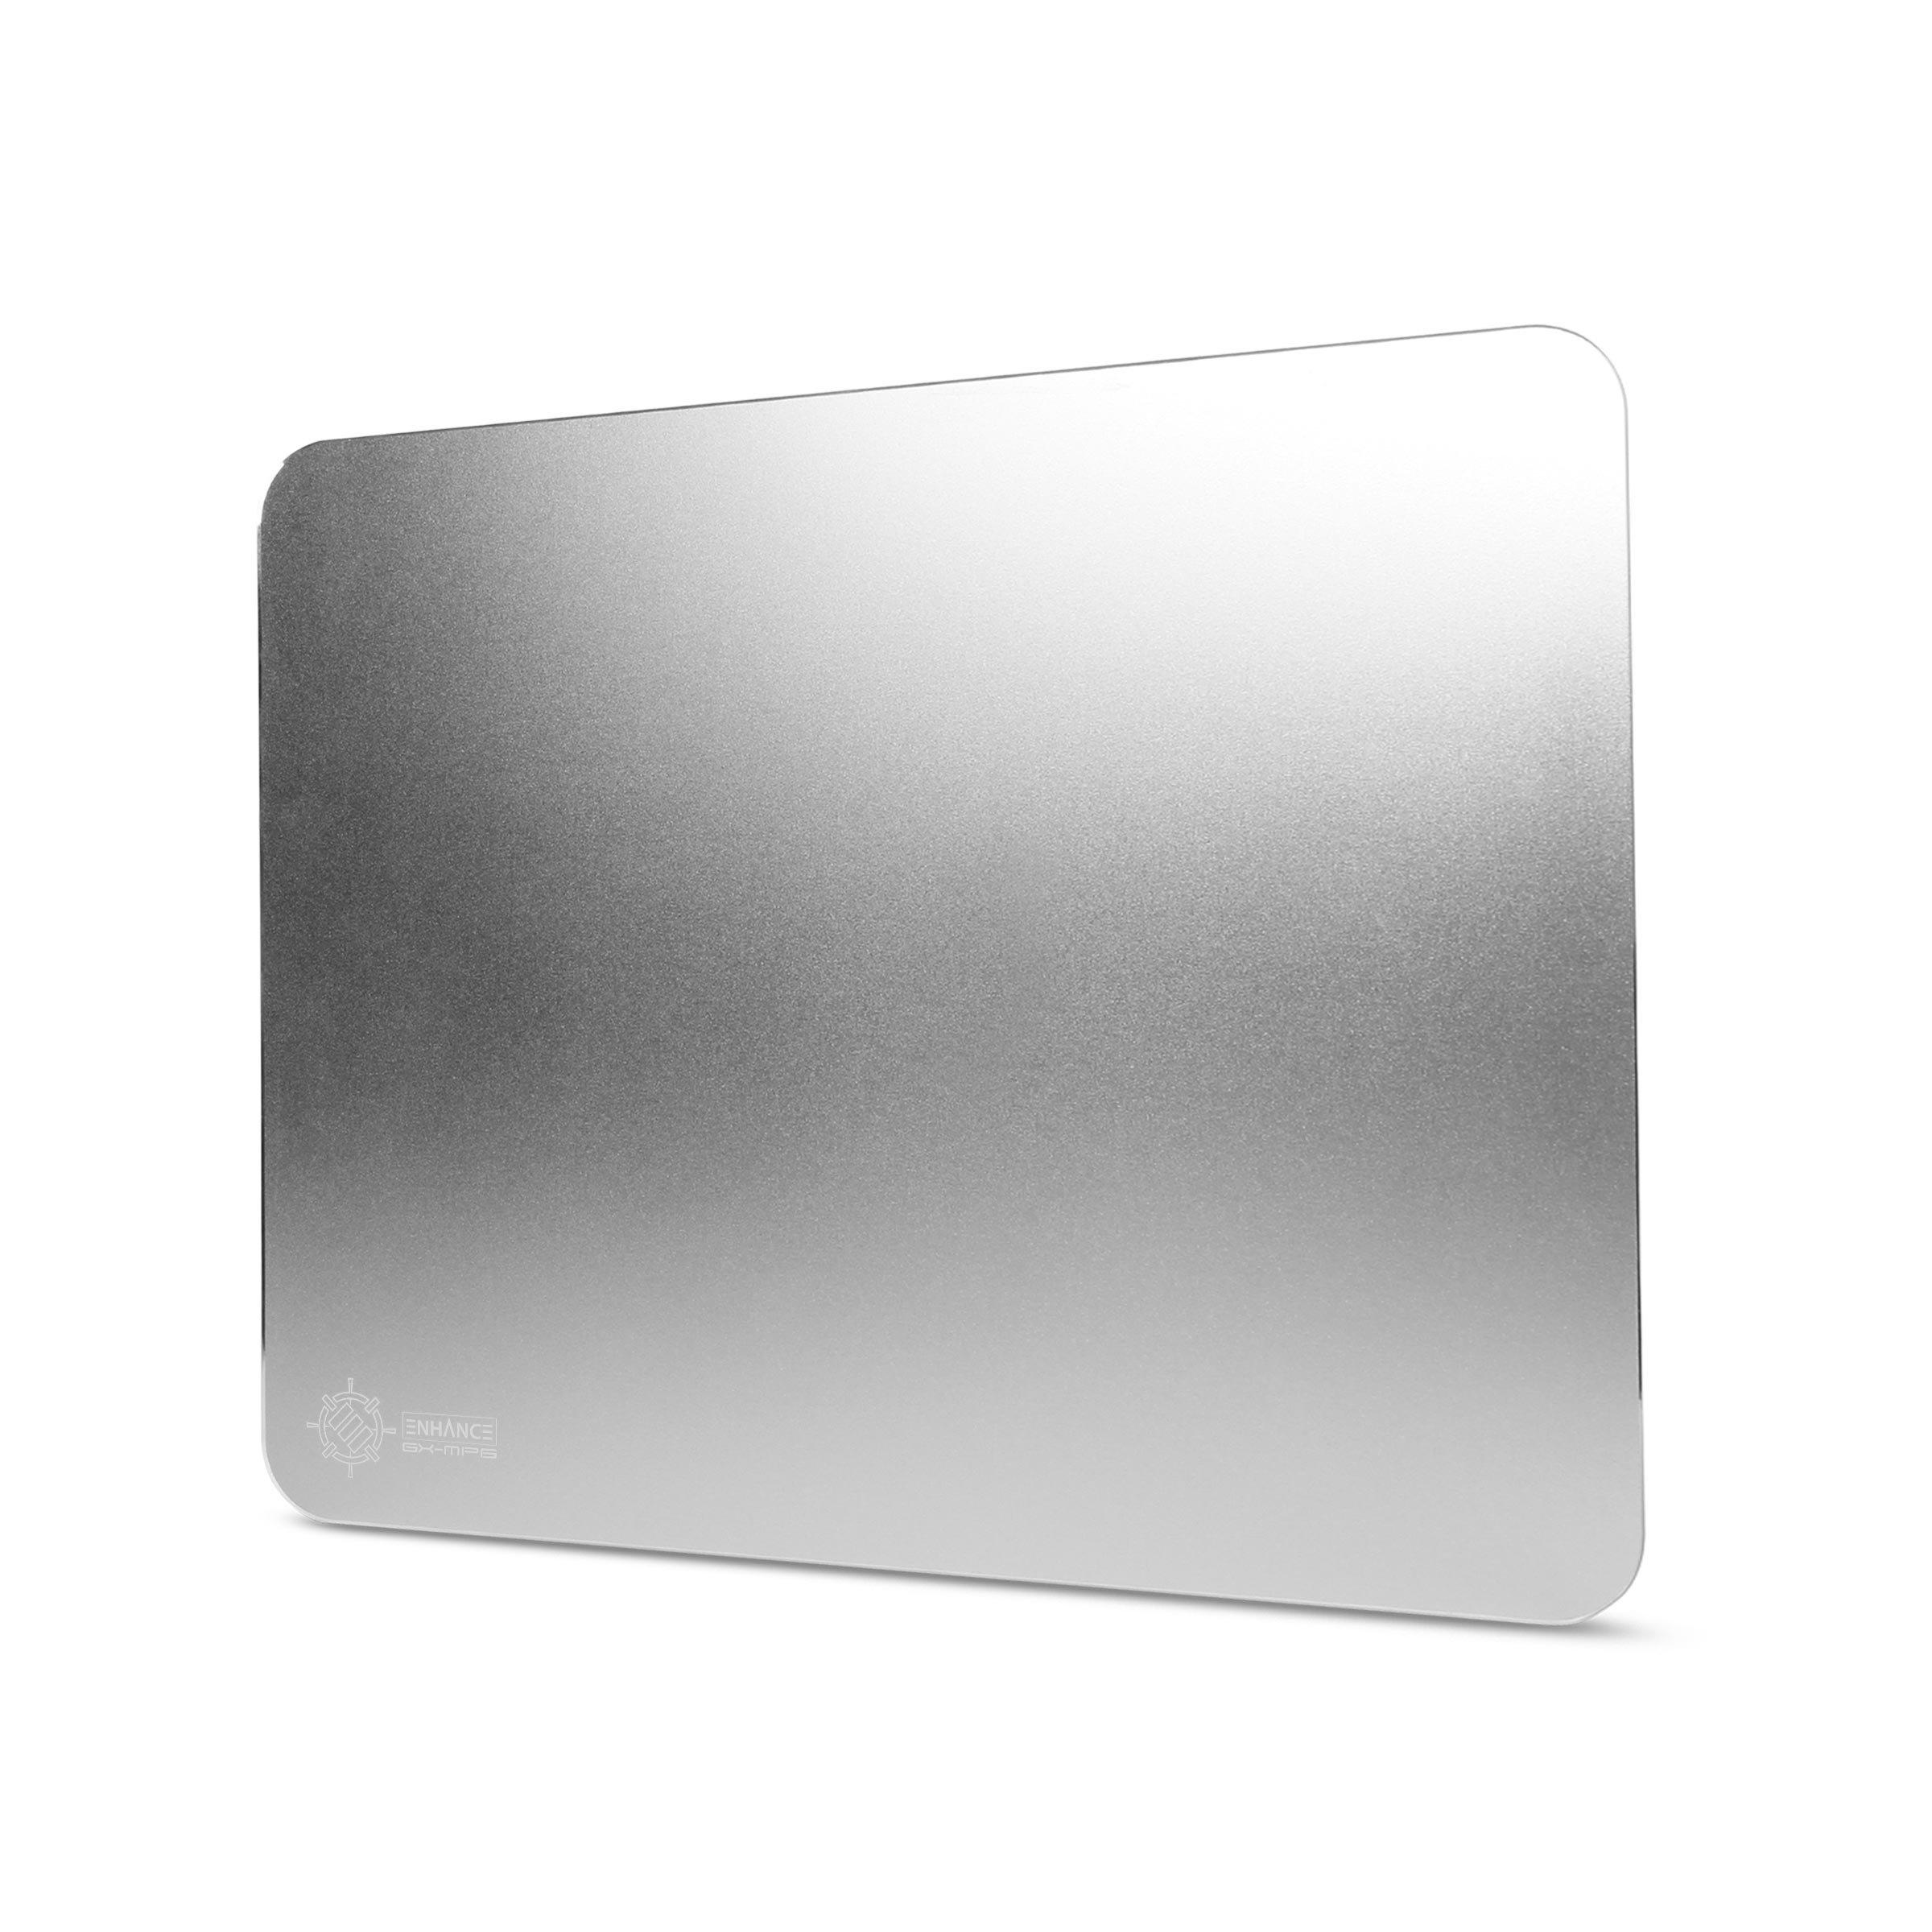 Aluminum Metal Gaming Mouse Pad XL by ENHANCE - Hard Mouse Surface , Non-Slip Rubber Base & High Accuracy Optimized Tracking - Brushed Metal Sleek Surface for Responsive Control